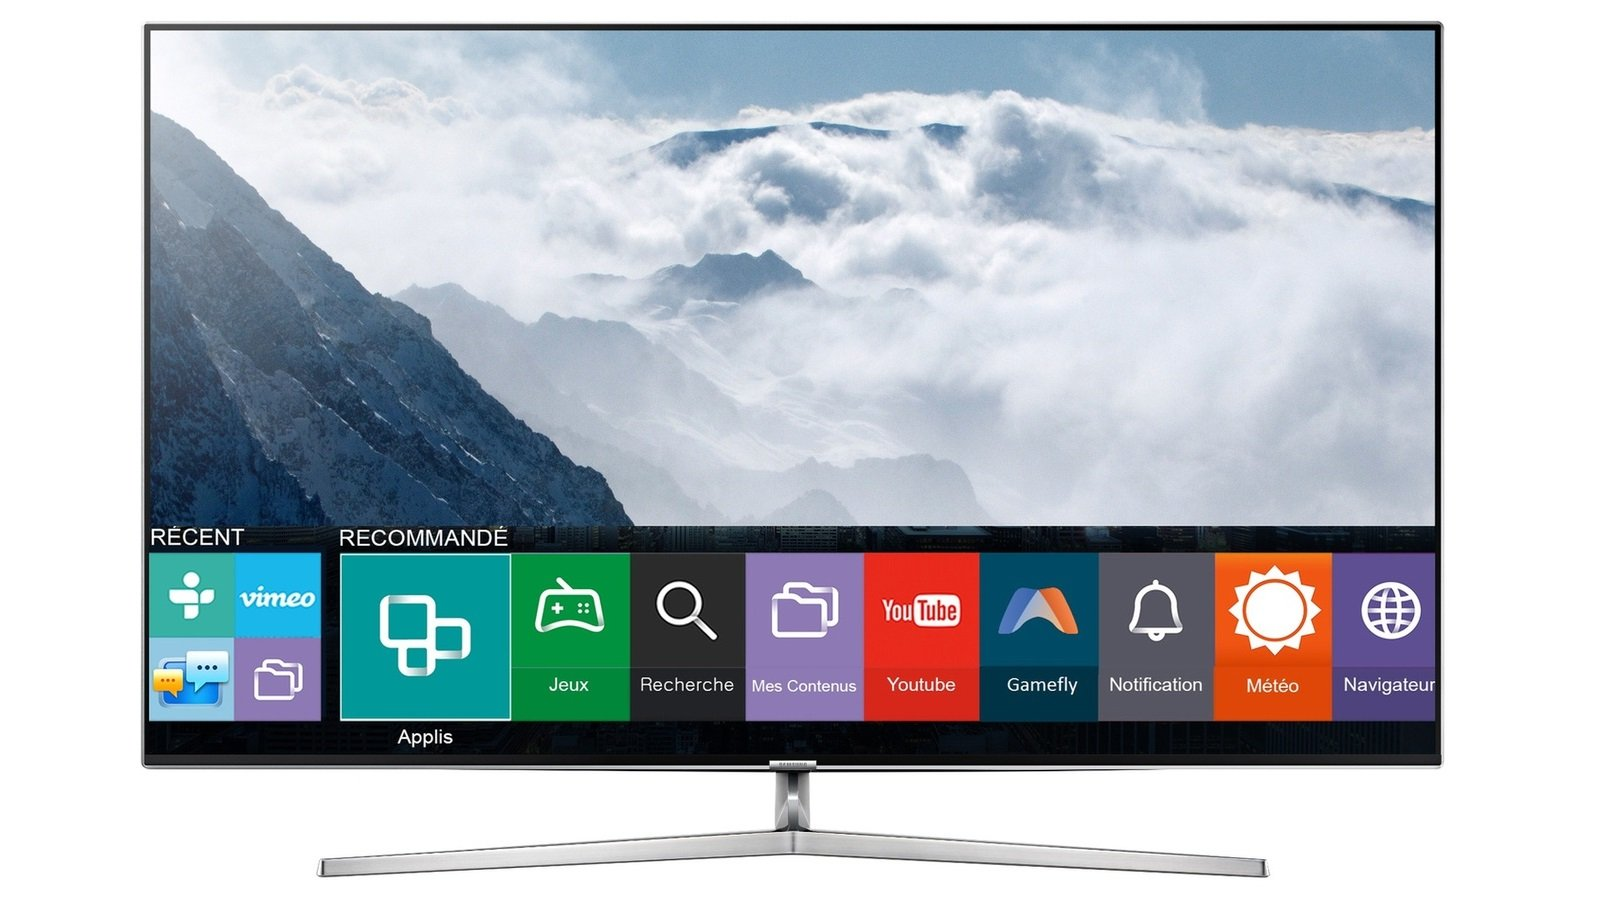 Samsung UE65KS8000 review: Serious 4K HDR performance for under ... for samsung flat screen tv price  303mzq